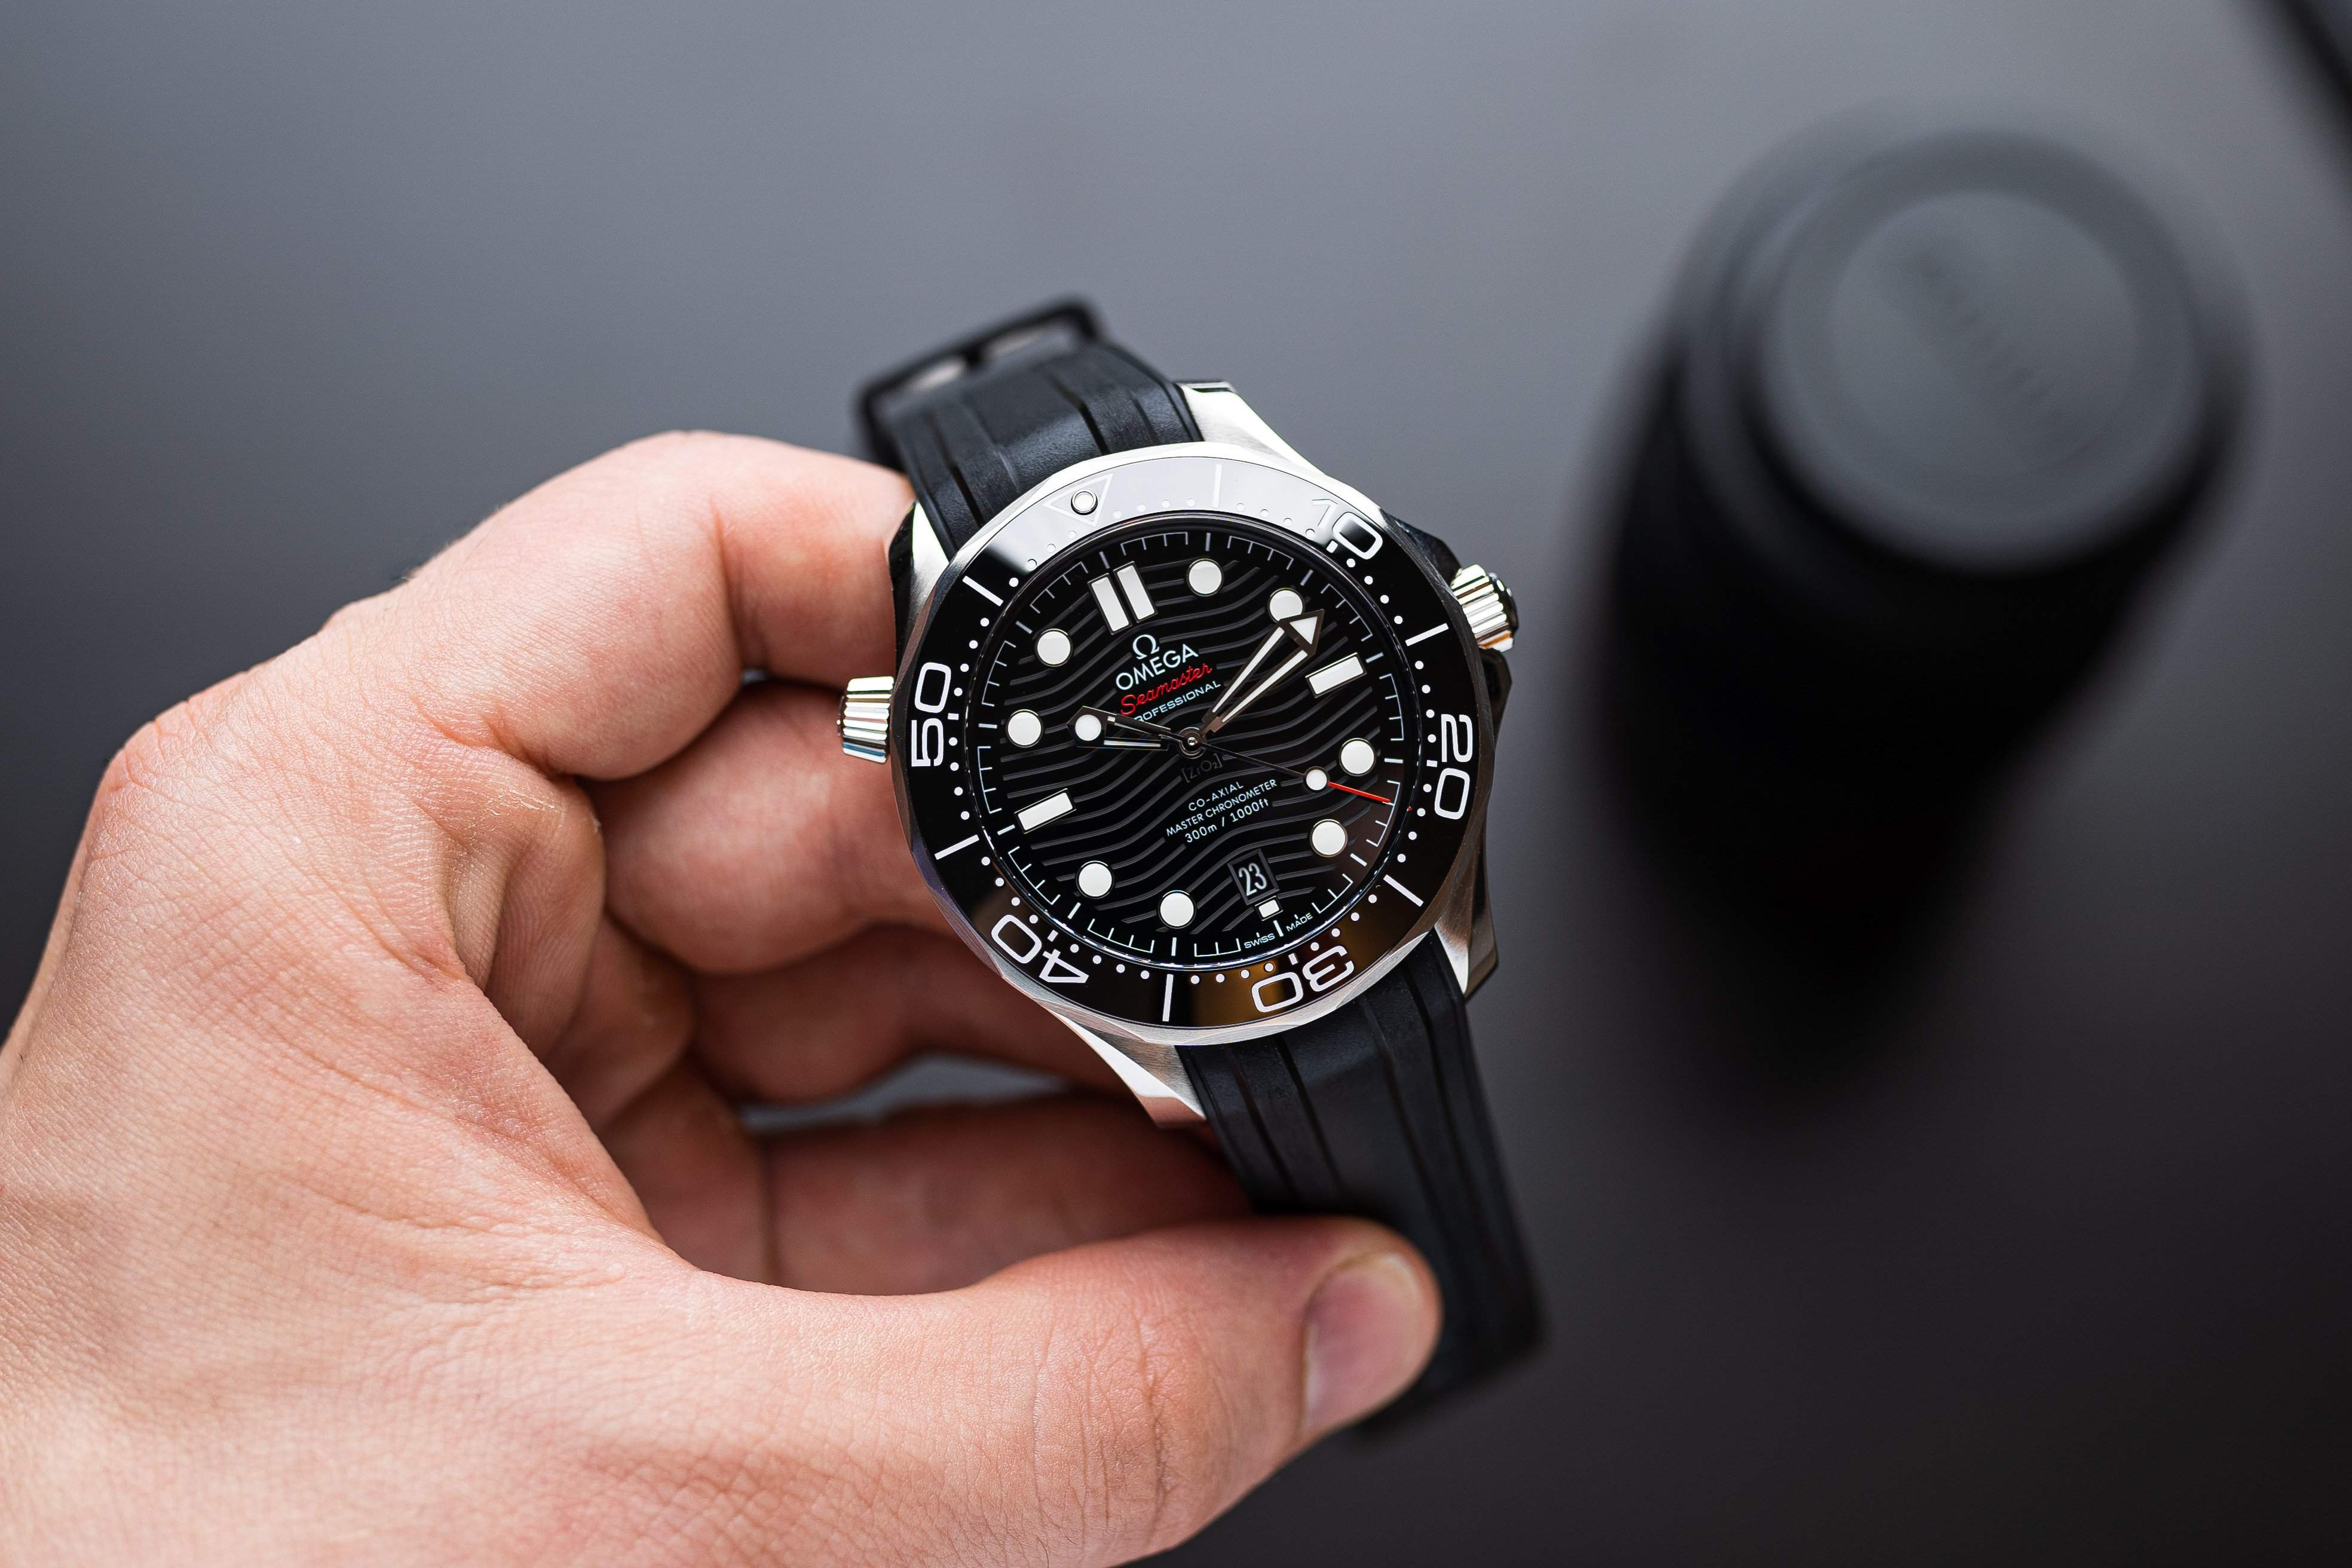 On the heels of the Speedmaster's popularity: The Omega Seamaster 300M